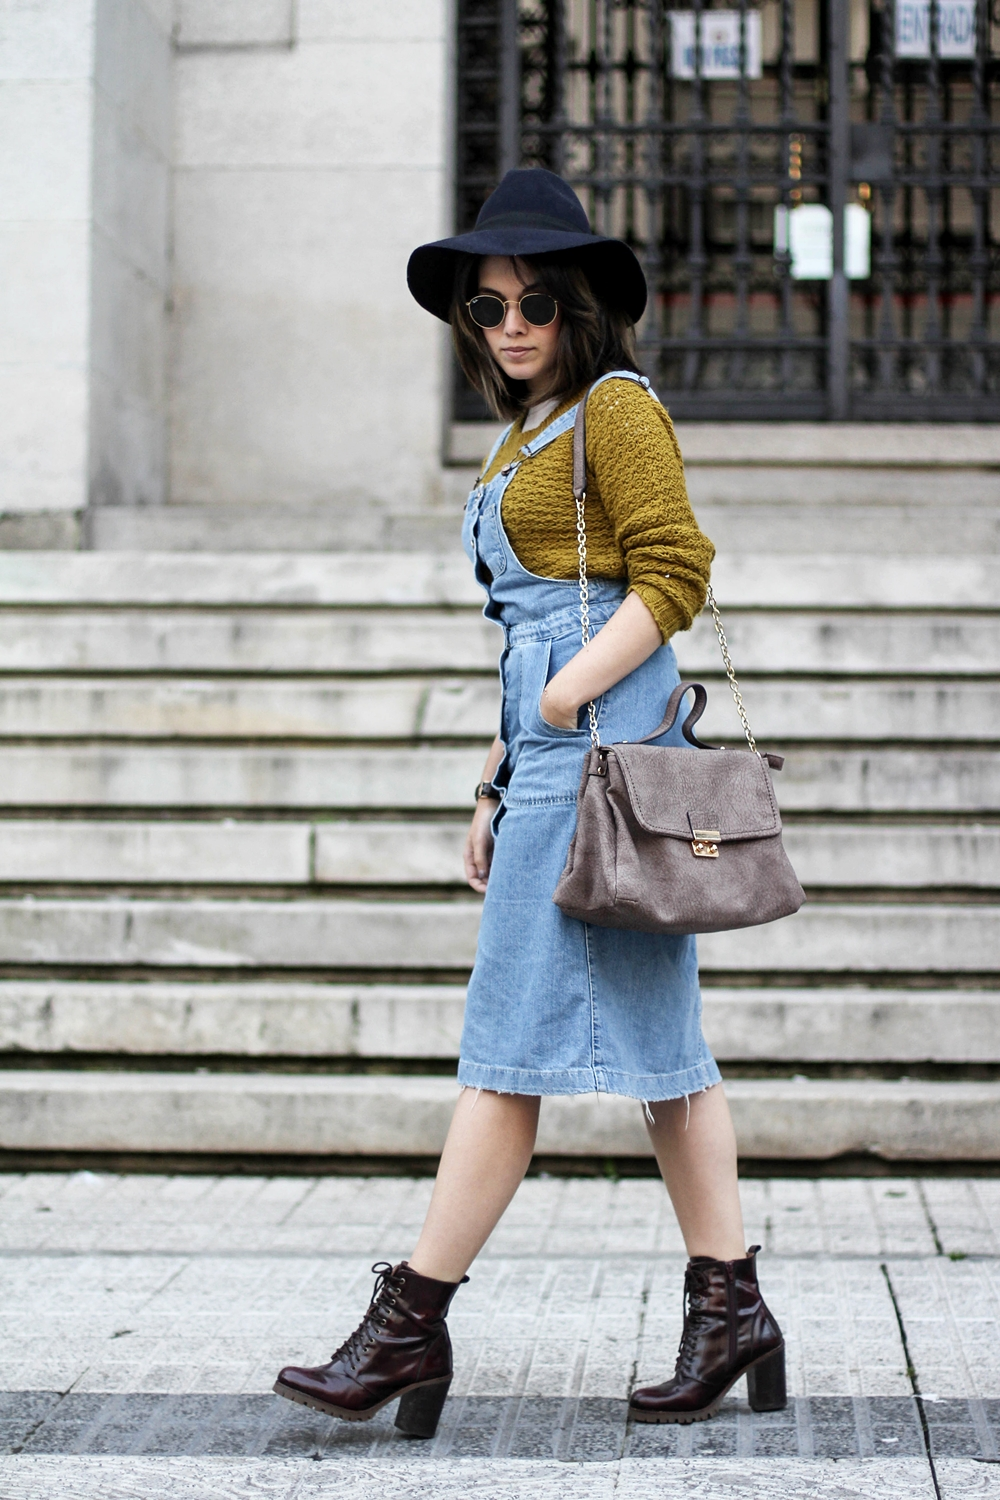 pinafore denim dress with zalando booties and navy hat myblueberrynightsblog